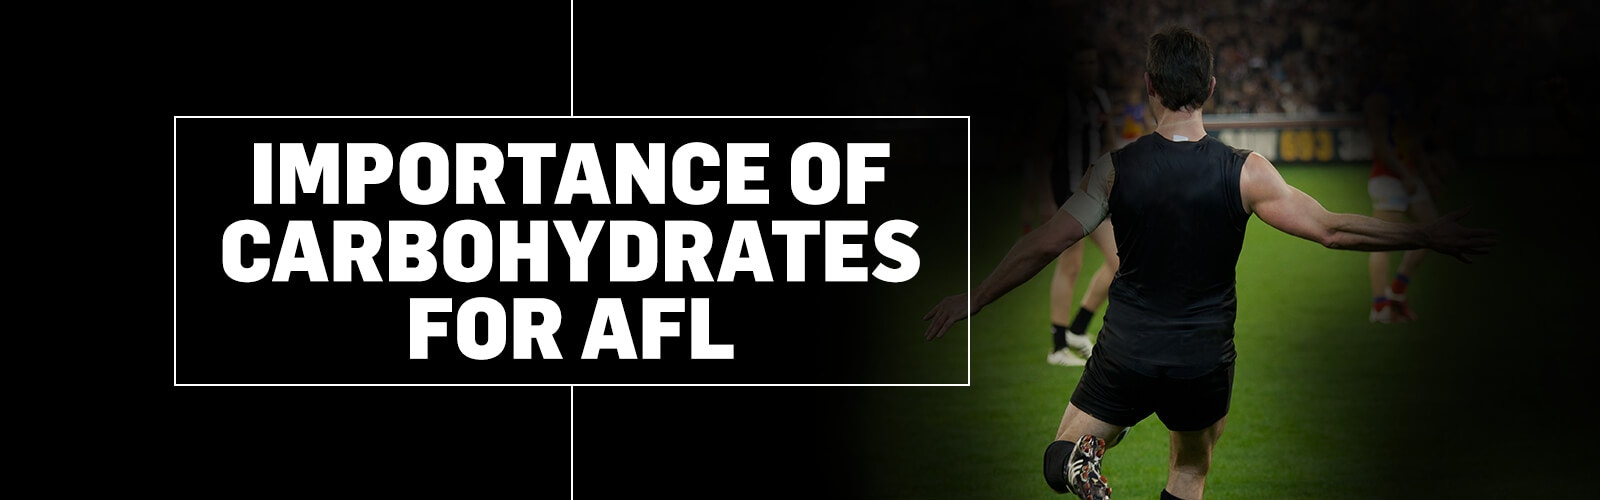 SIS - Importance of carbohydrates for AFL